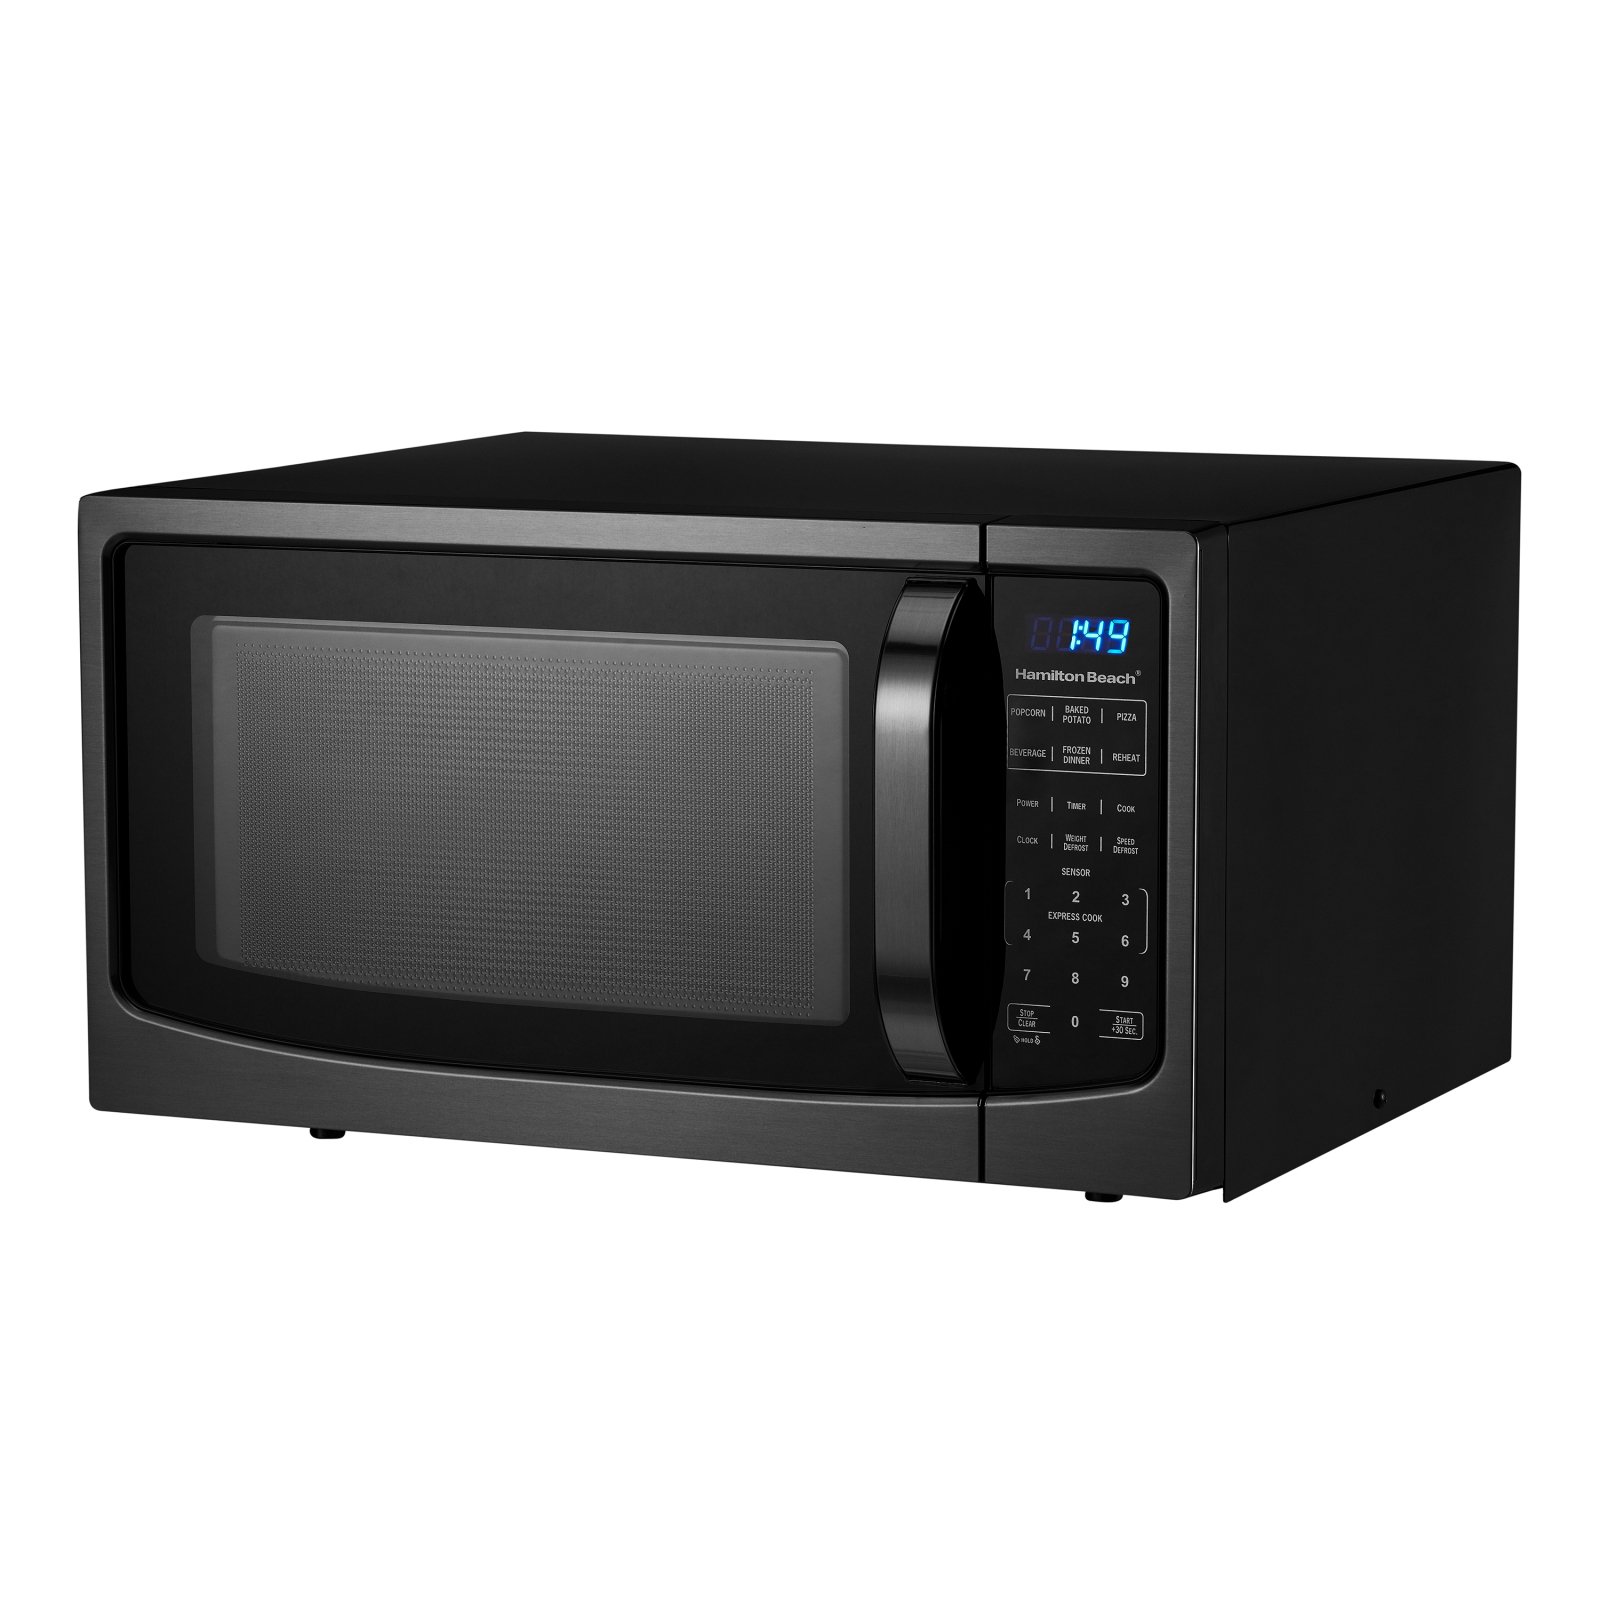 Hamilton Beach 1.6 Cu.ft Black Stainless Steel Digital Microwave Oven